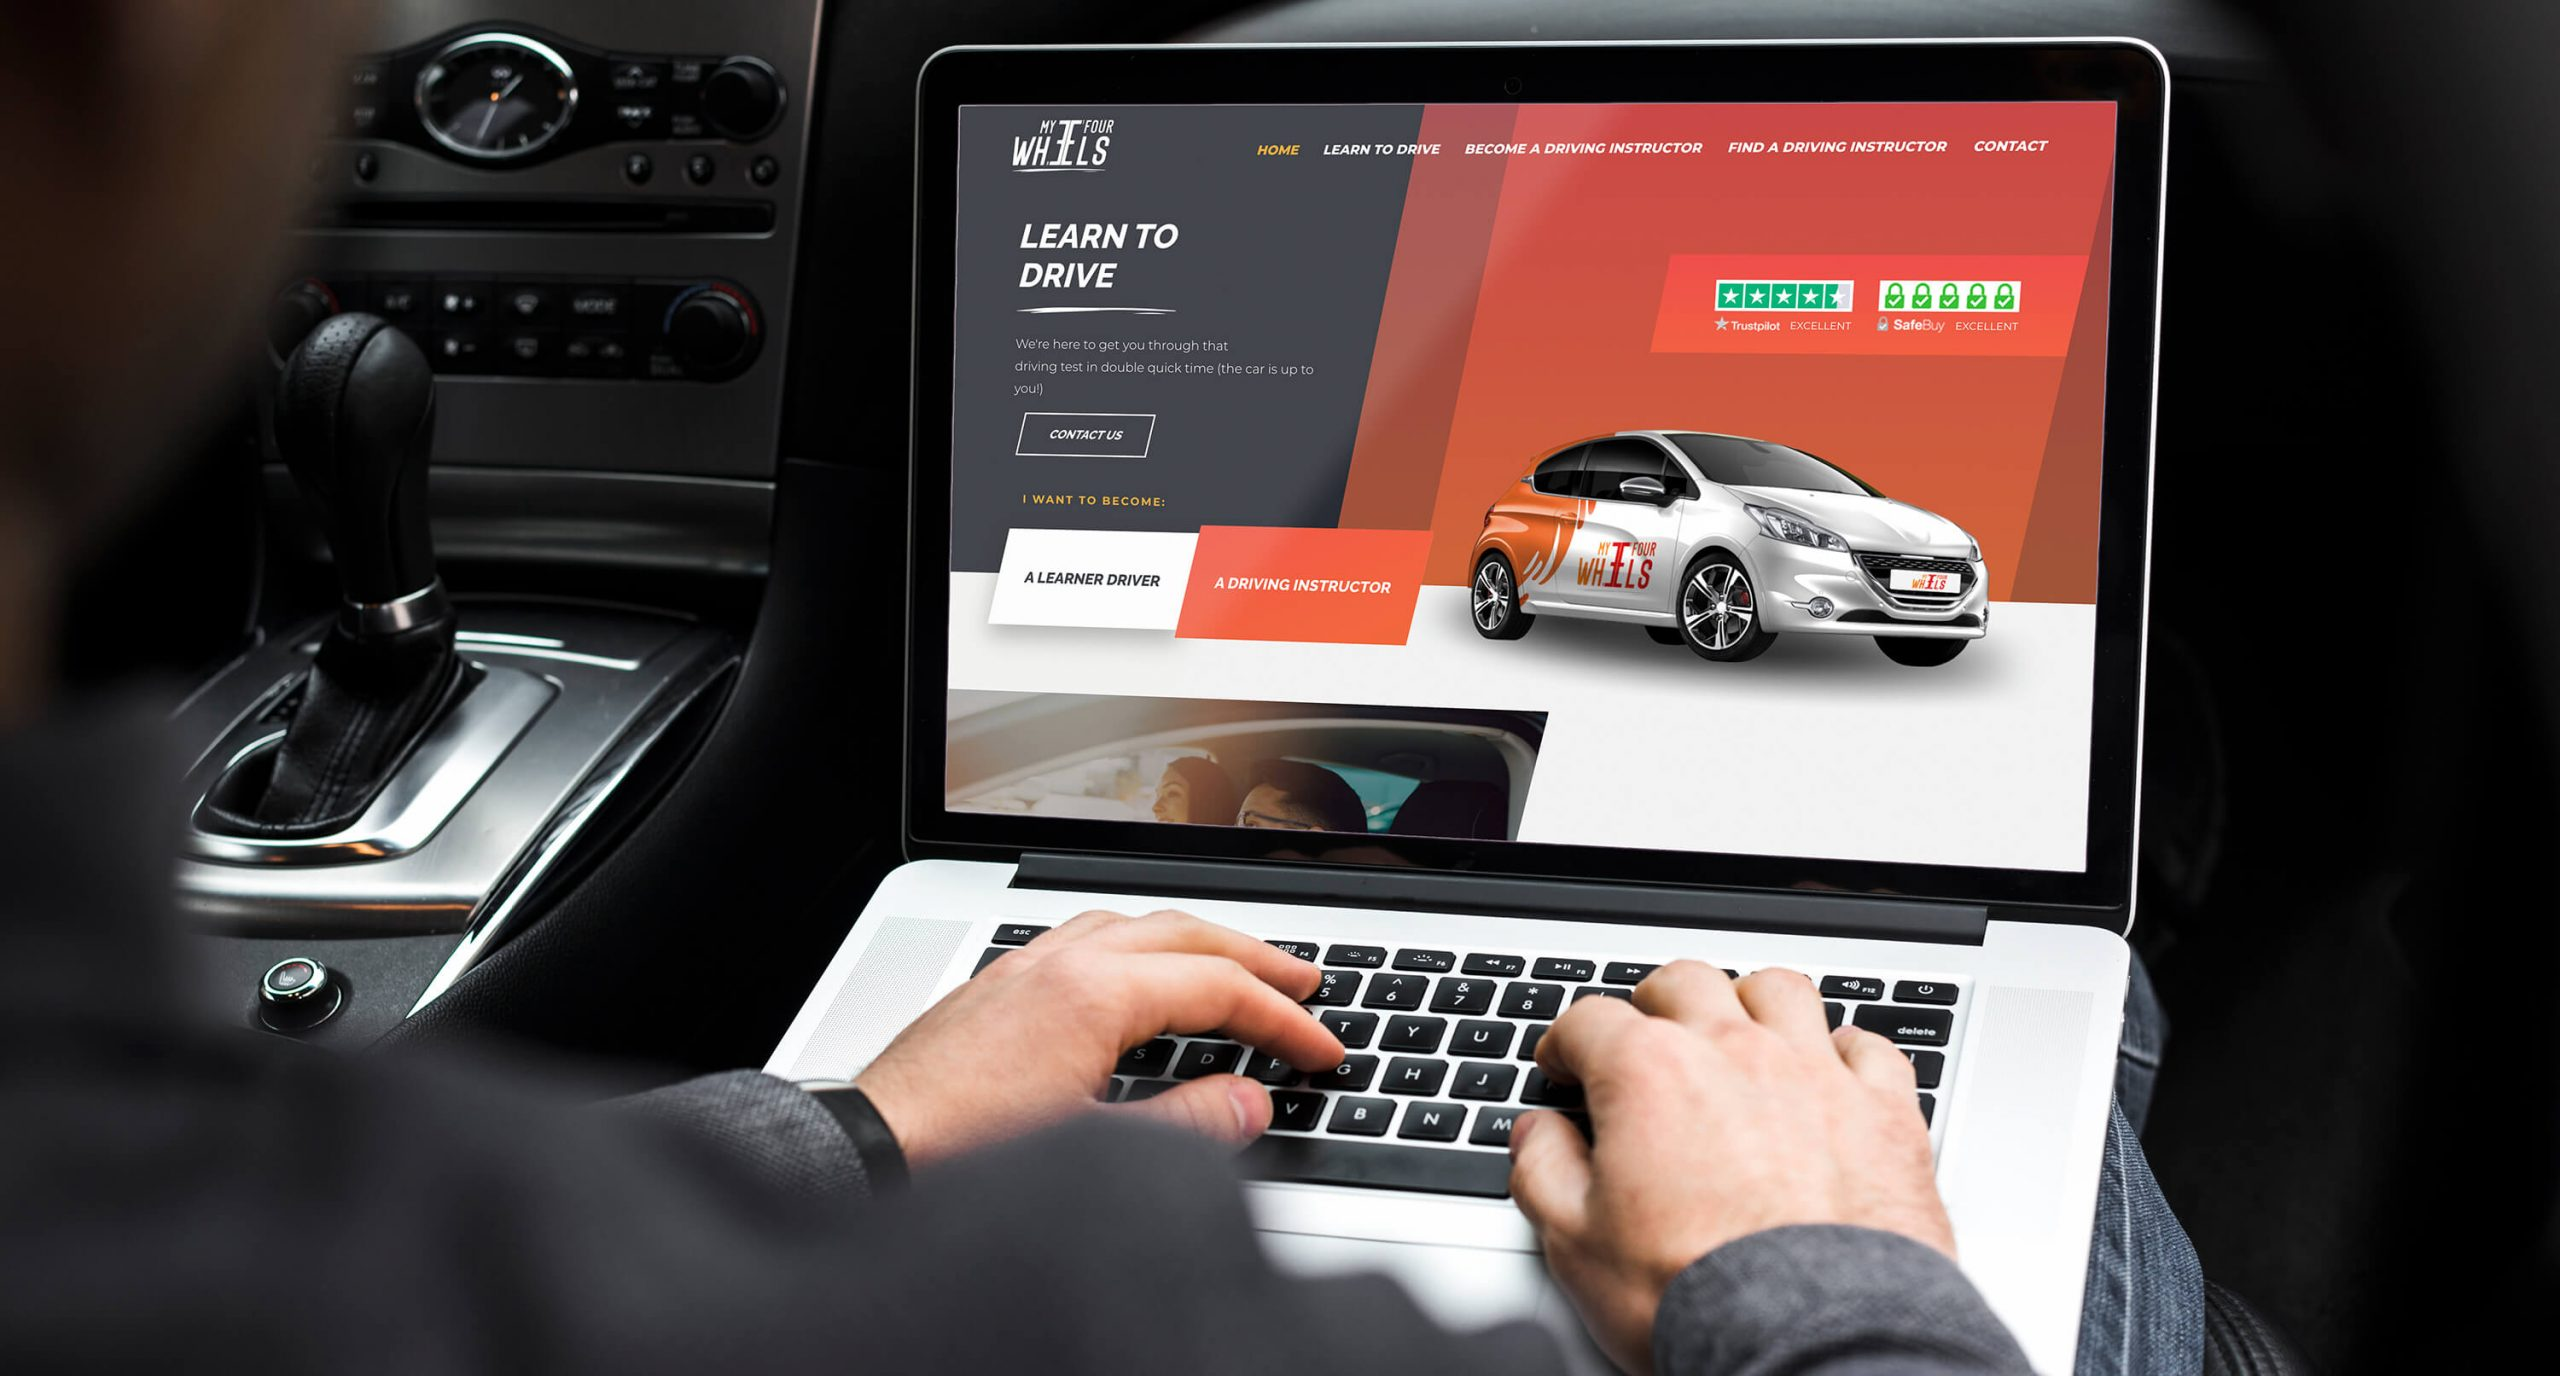 My Four Wheels website displayed on a laptop screen